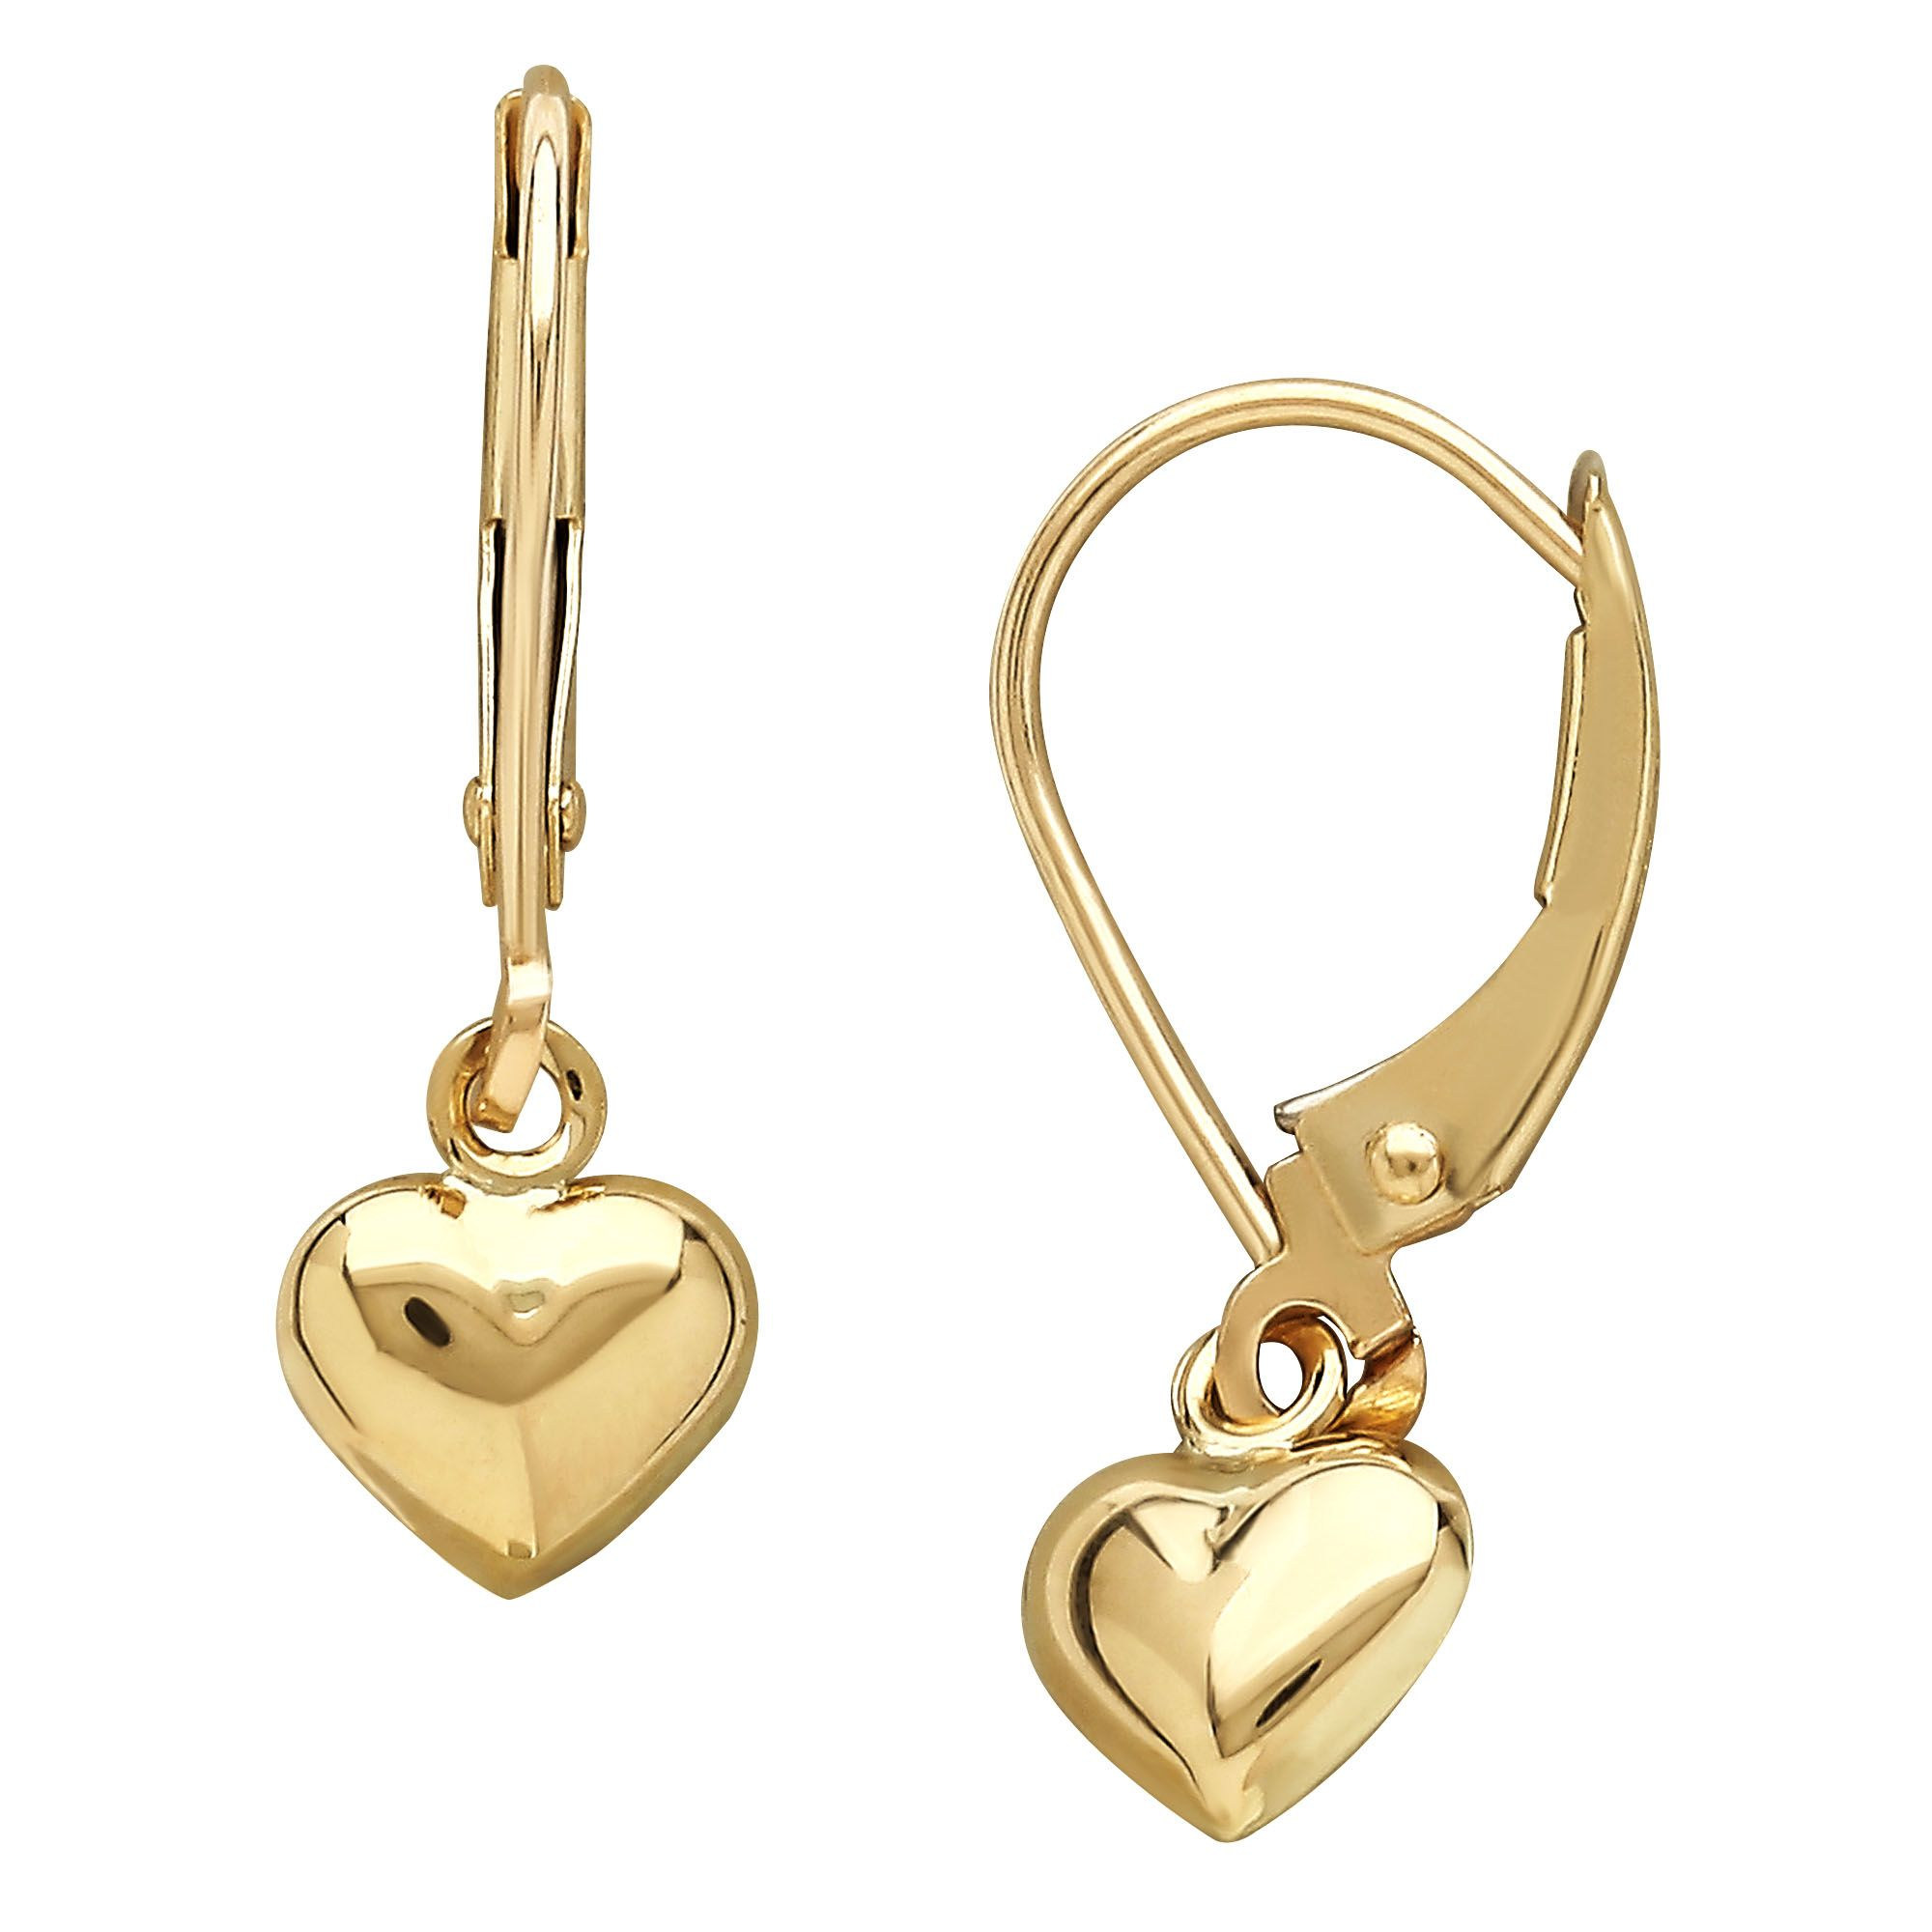 10 Karat Yellow Gold Baby Lever Small Heart Drop Earrings Infant Unisex Heart Drop Earrings Baby Earrings Small Heart